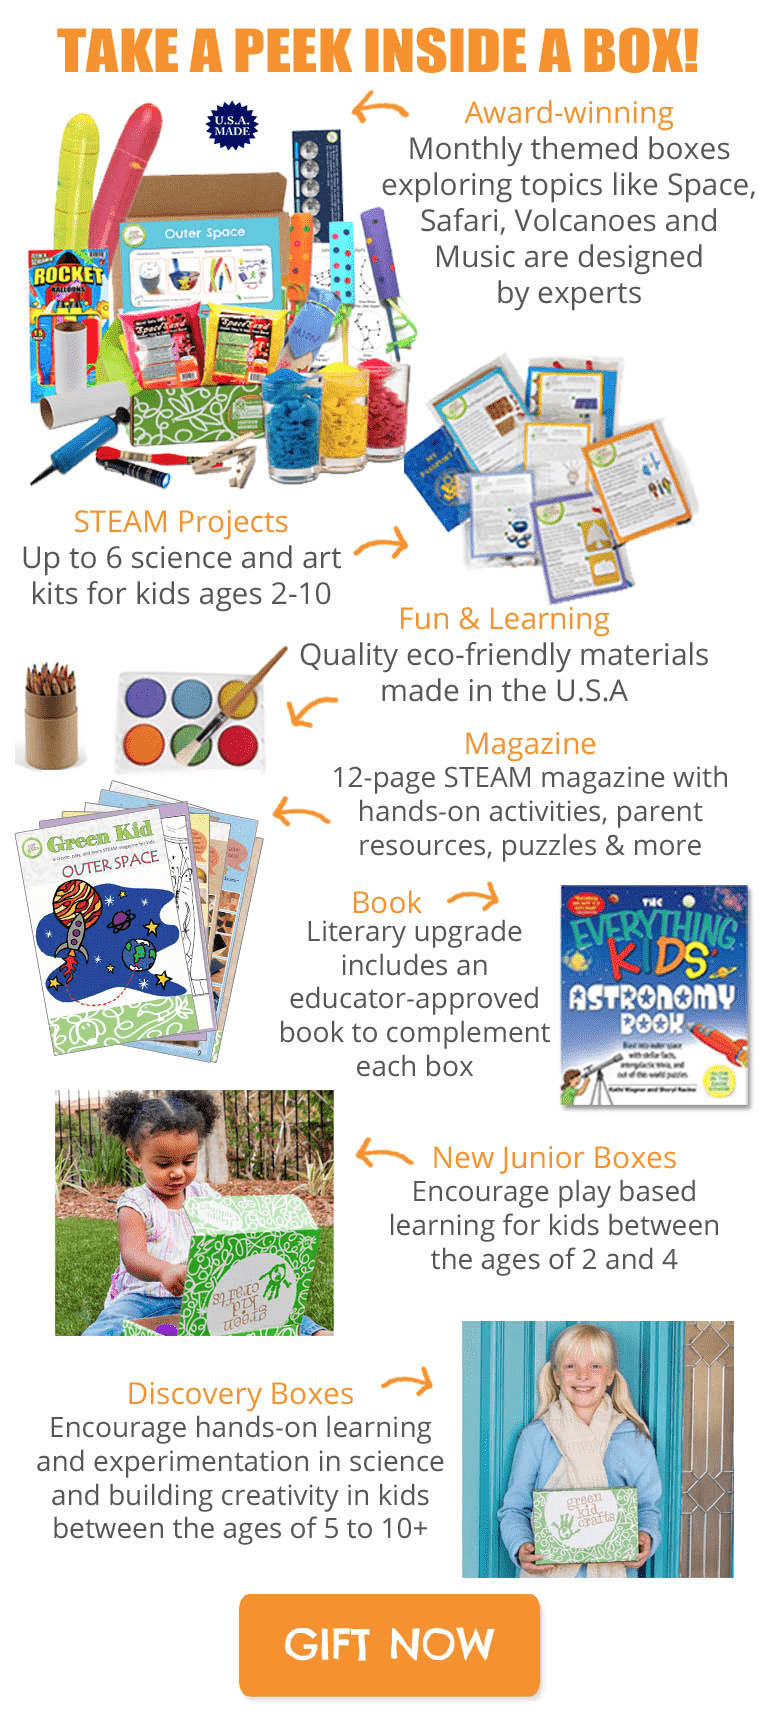 Green Kid Crafts Boxing Week Sale: Get 50% Off On Your First Discovery Box!